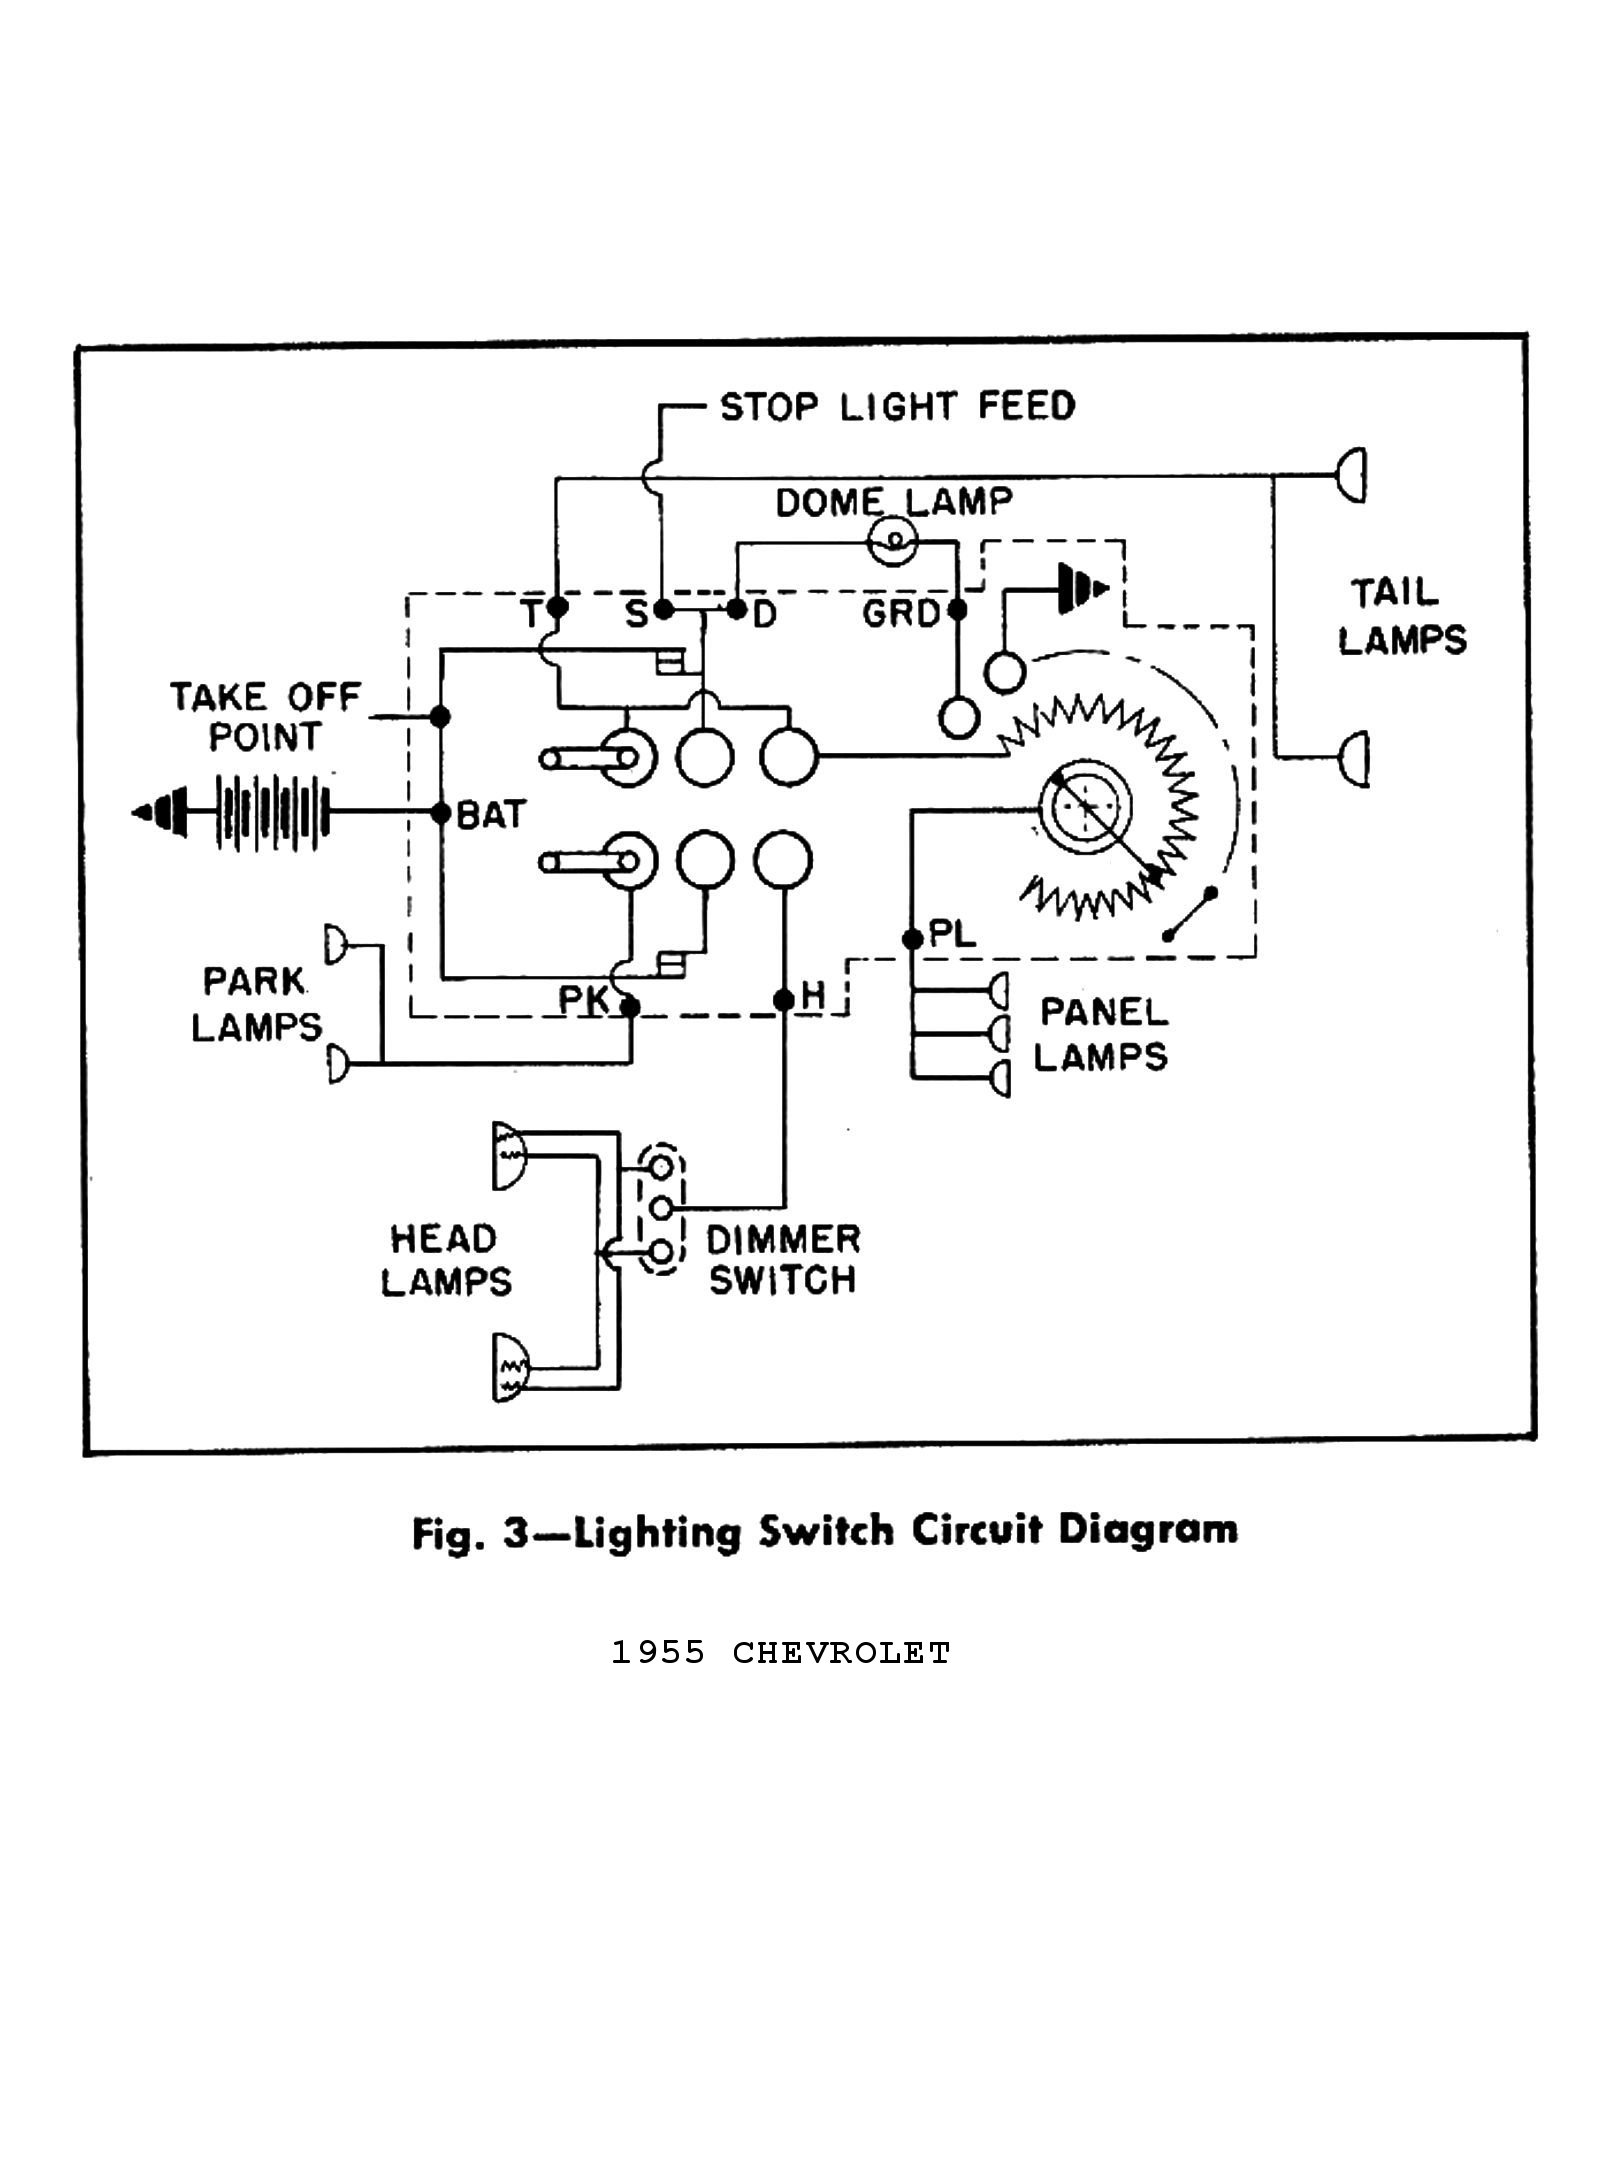 hight resolution of 966 gm ignition switch wiring diagram wiring diagram blog78 chevy k20 ignition wiring diagram wiring library